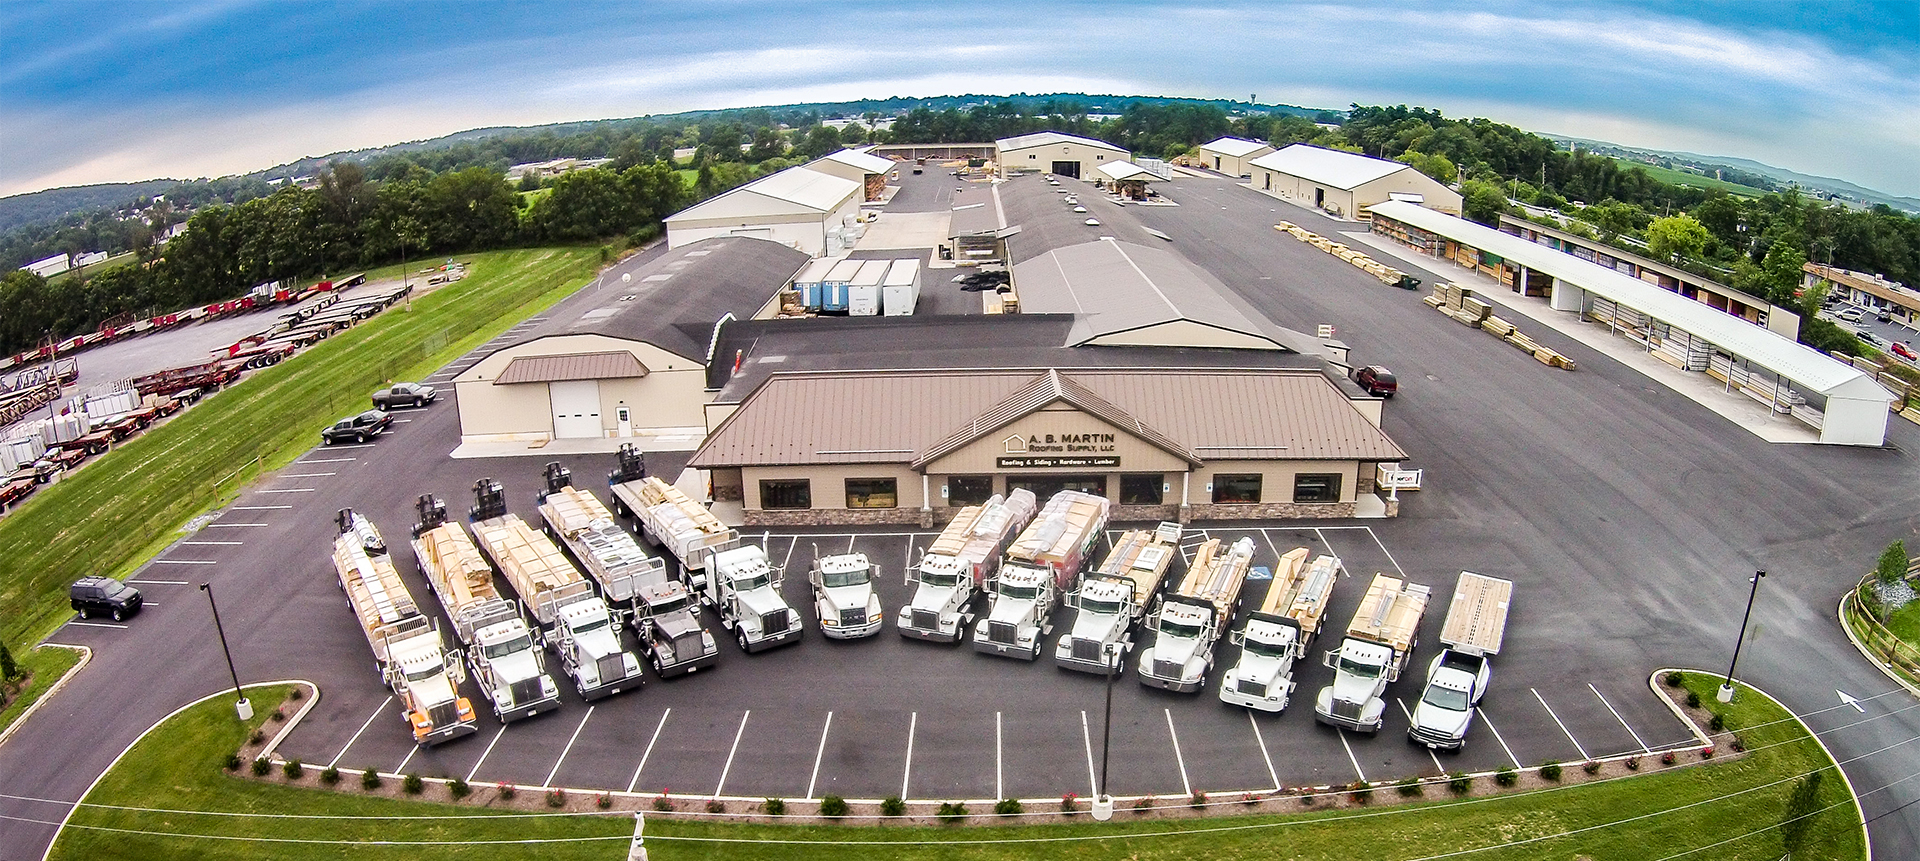 A B Martin Roofing Supply In Ephrata Pa 17522